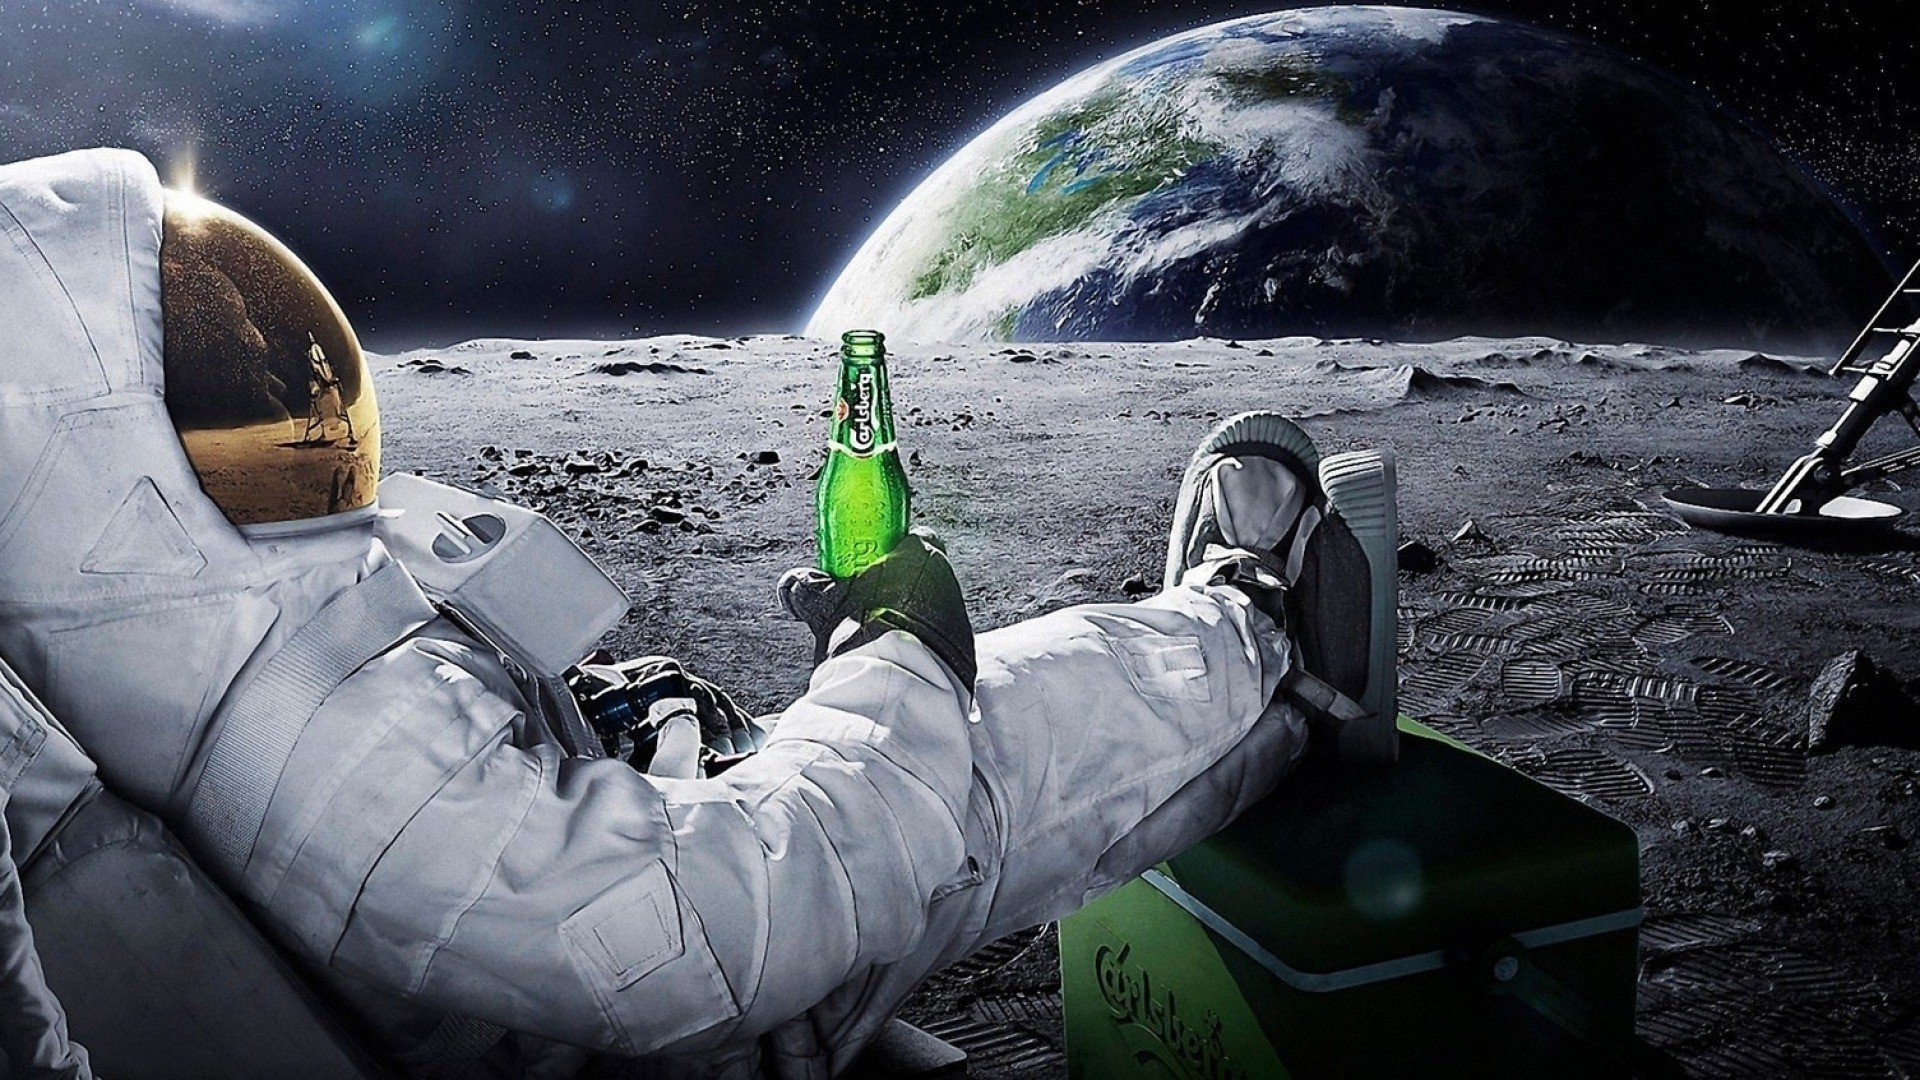 beers outer space Moon Earth funny spaceships relaxing Carlsberg space 1920x1080